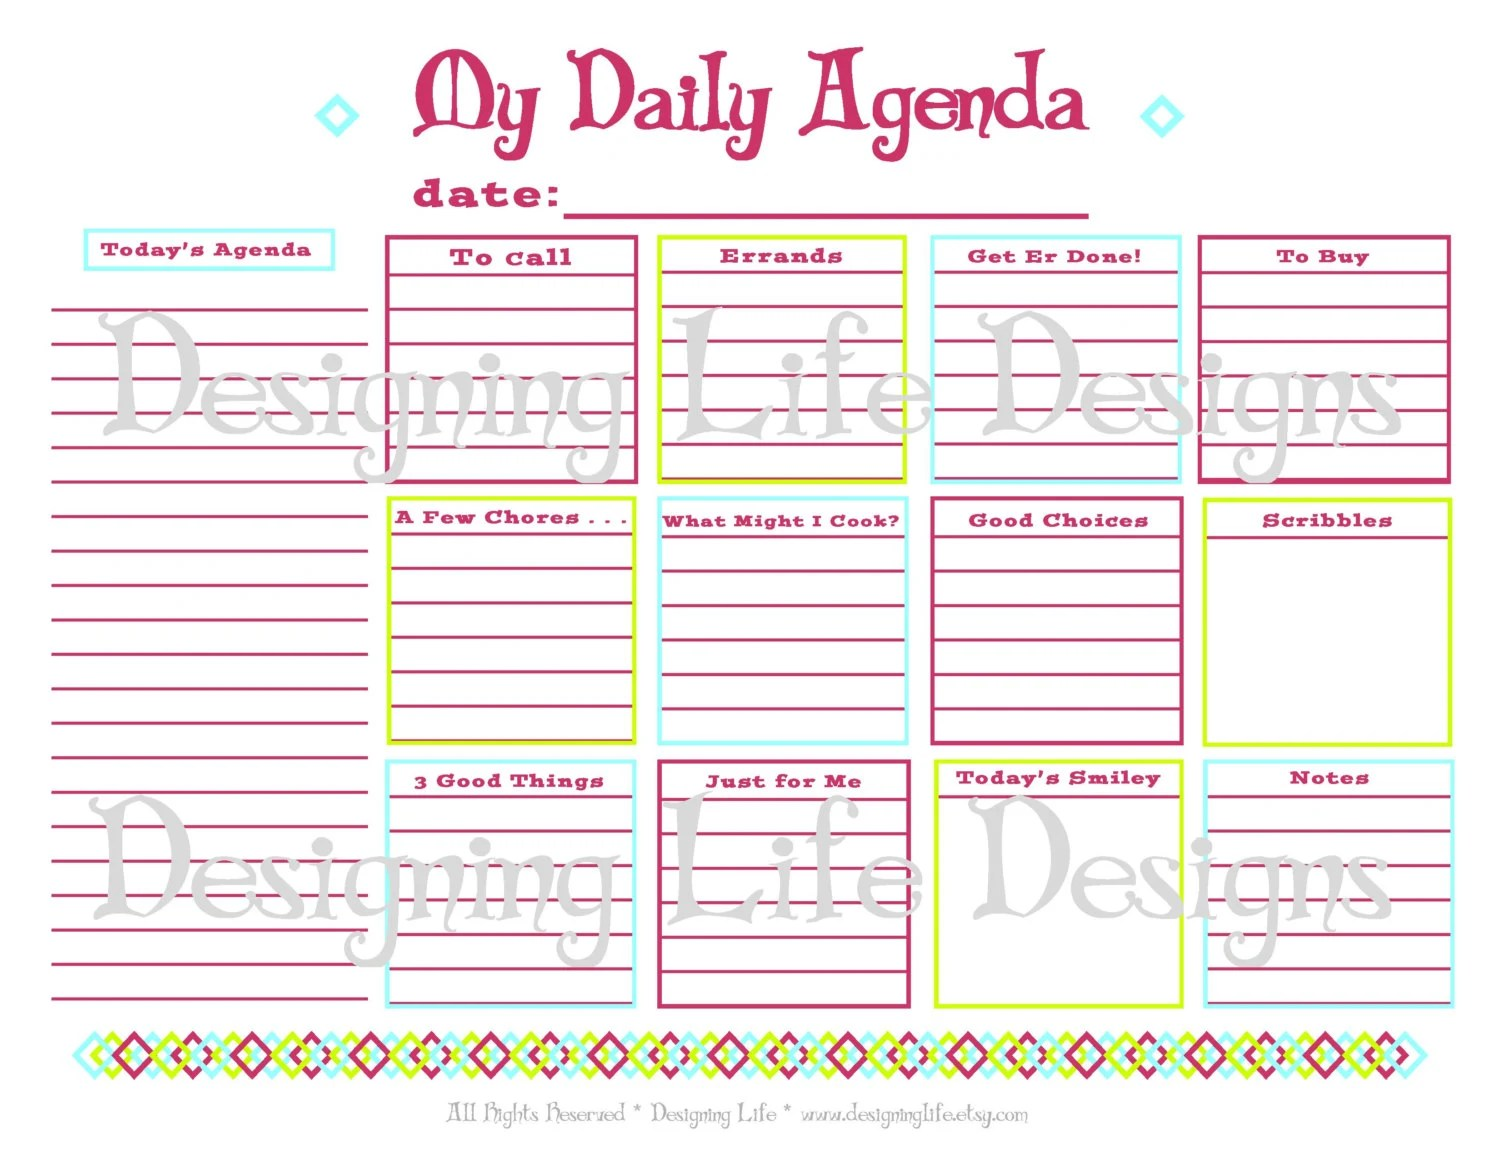 Daily Agenda Printable Daily Planner Page To Do List